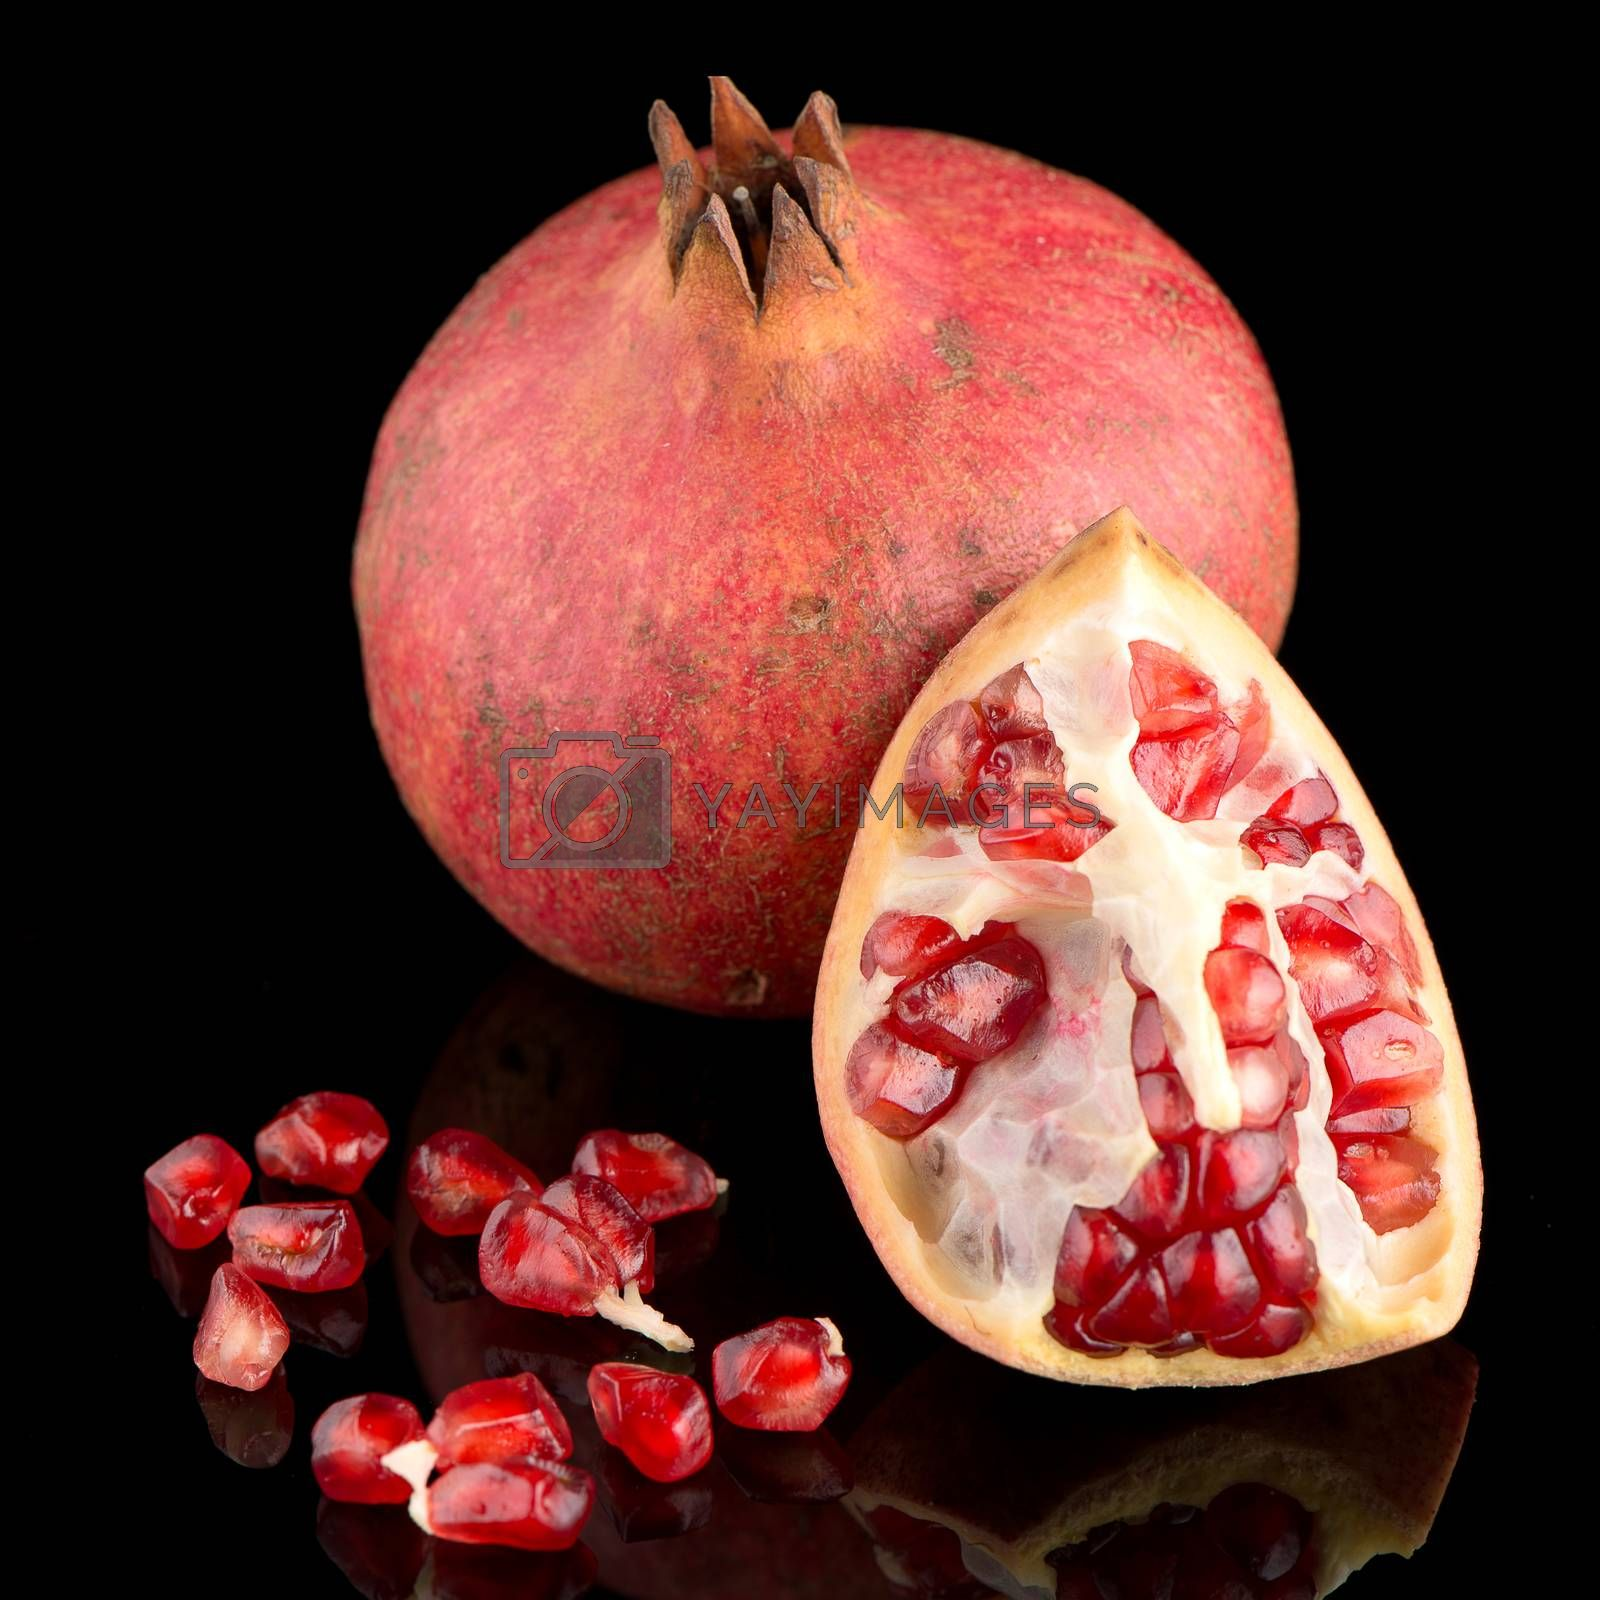 Royalty free image of Ripe pomegranate fruit by homydesign